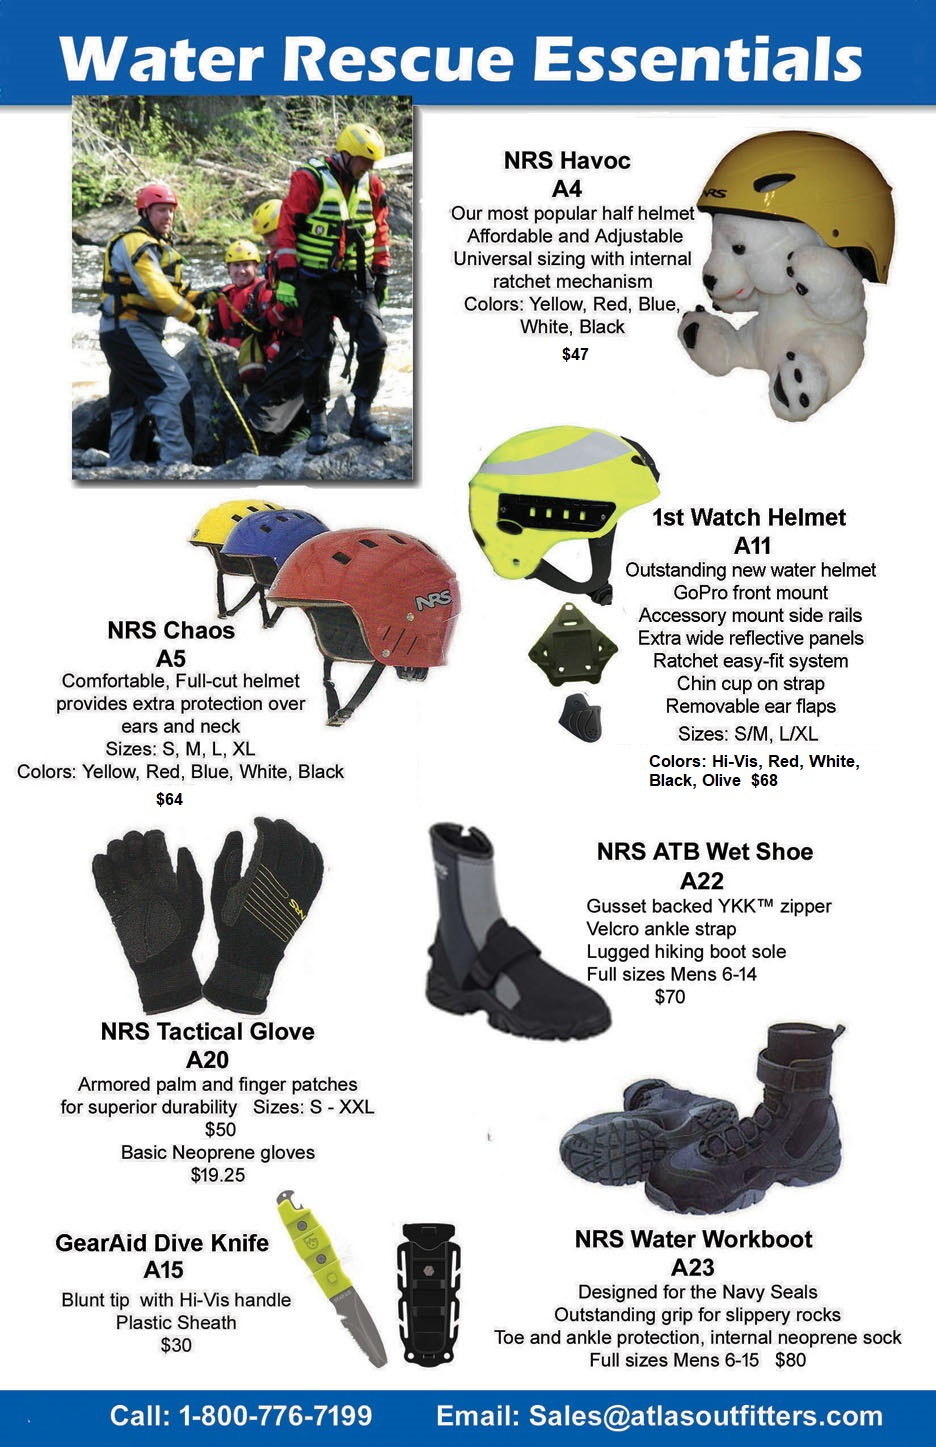 Helmets, gloves and foot wear for water rescue